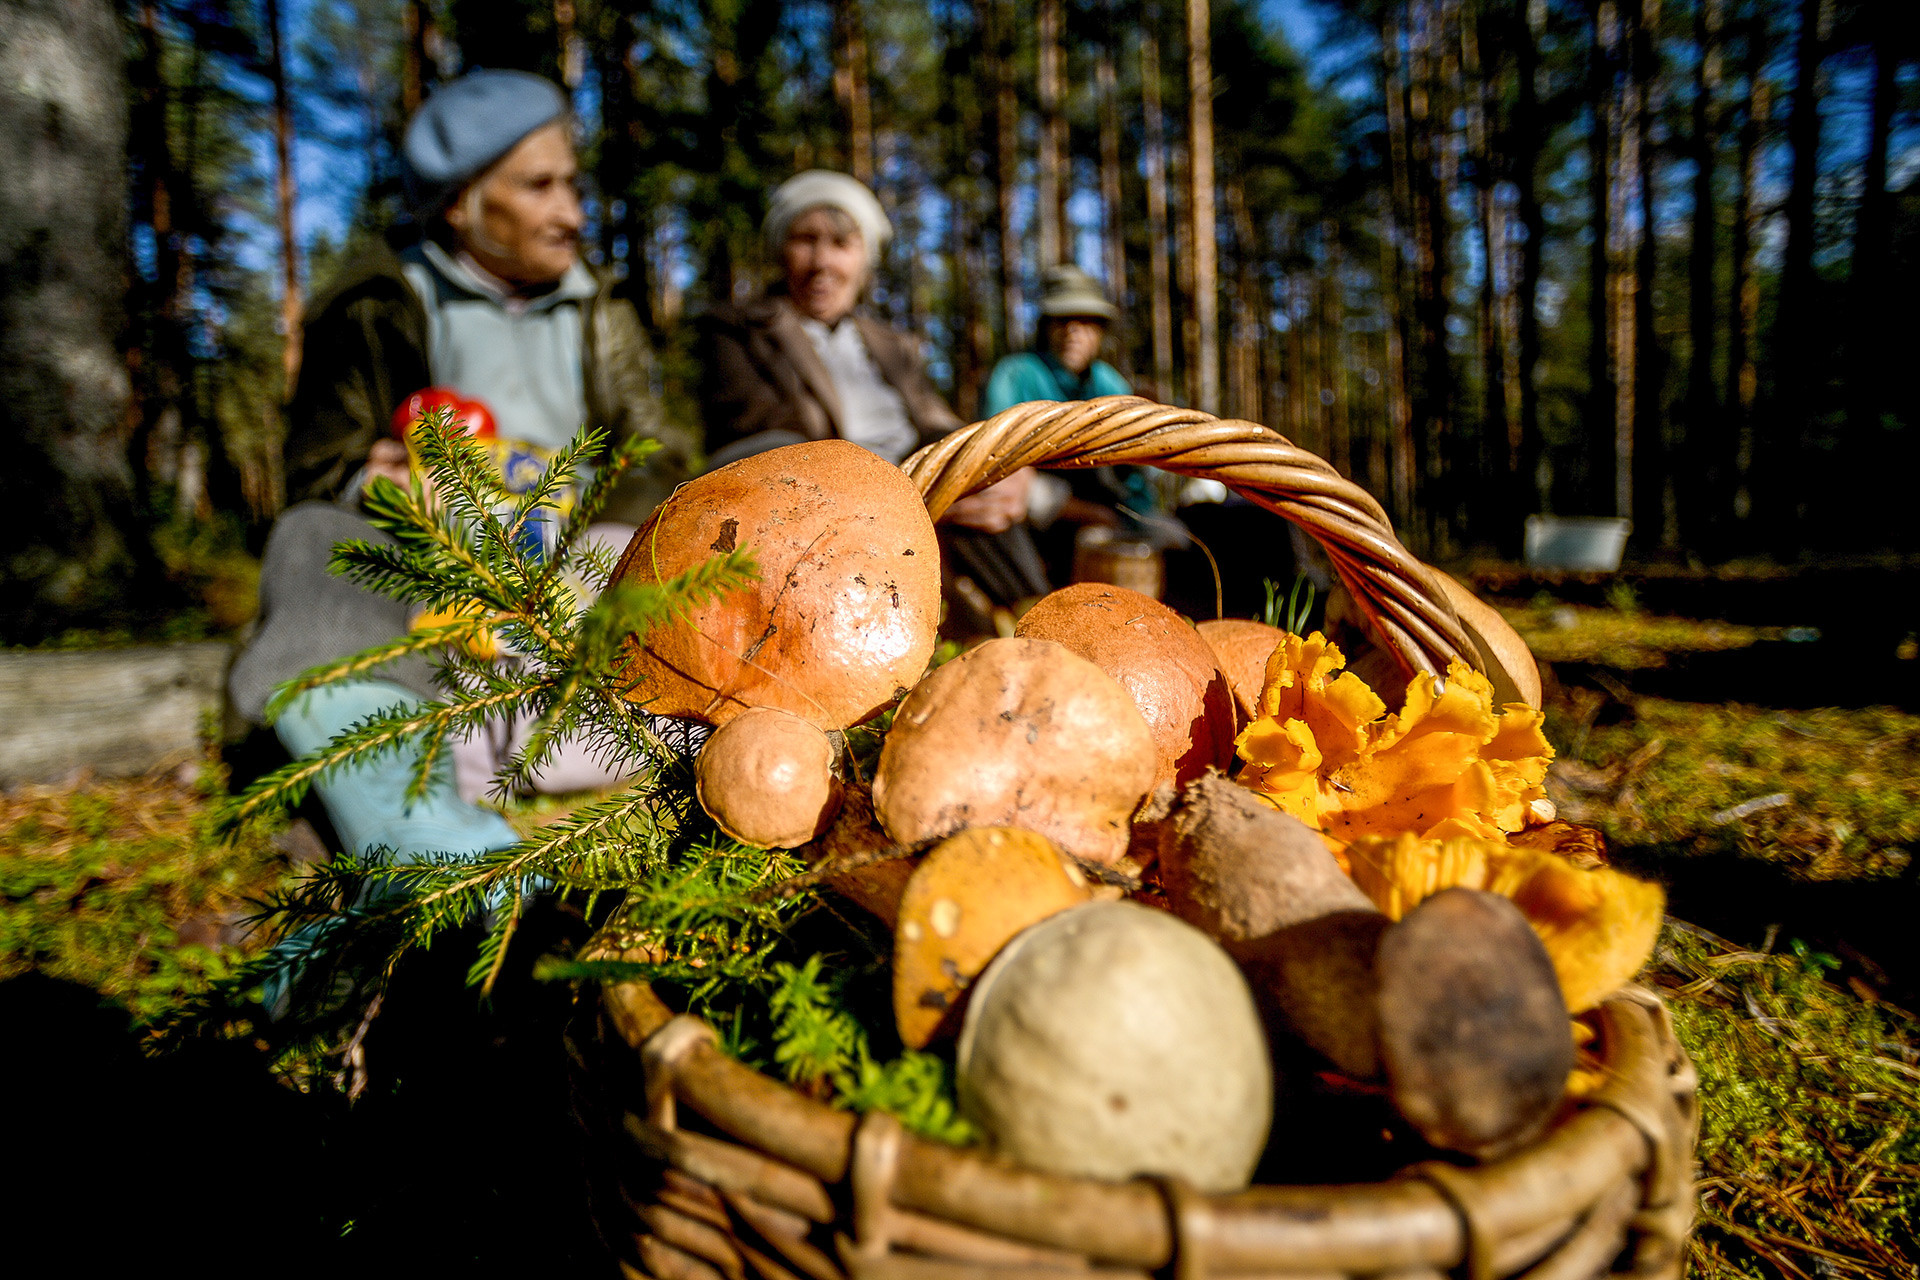 Babushkas selling mushrooms in the Novgorod Region.